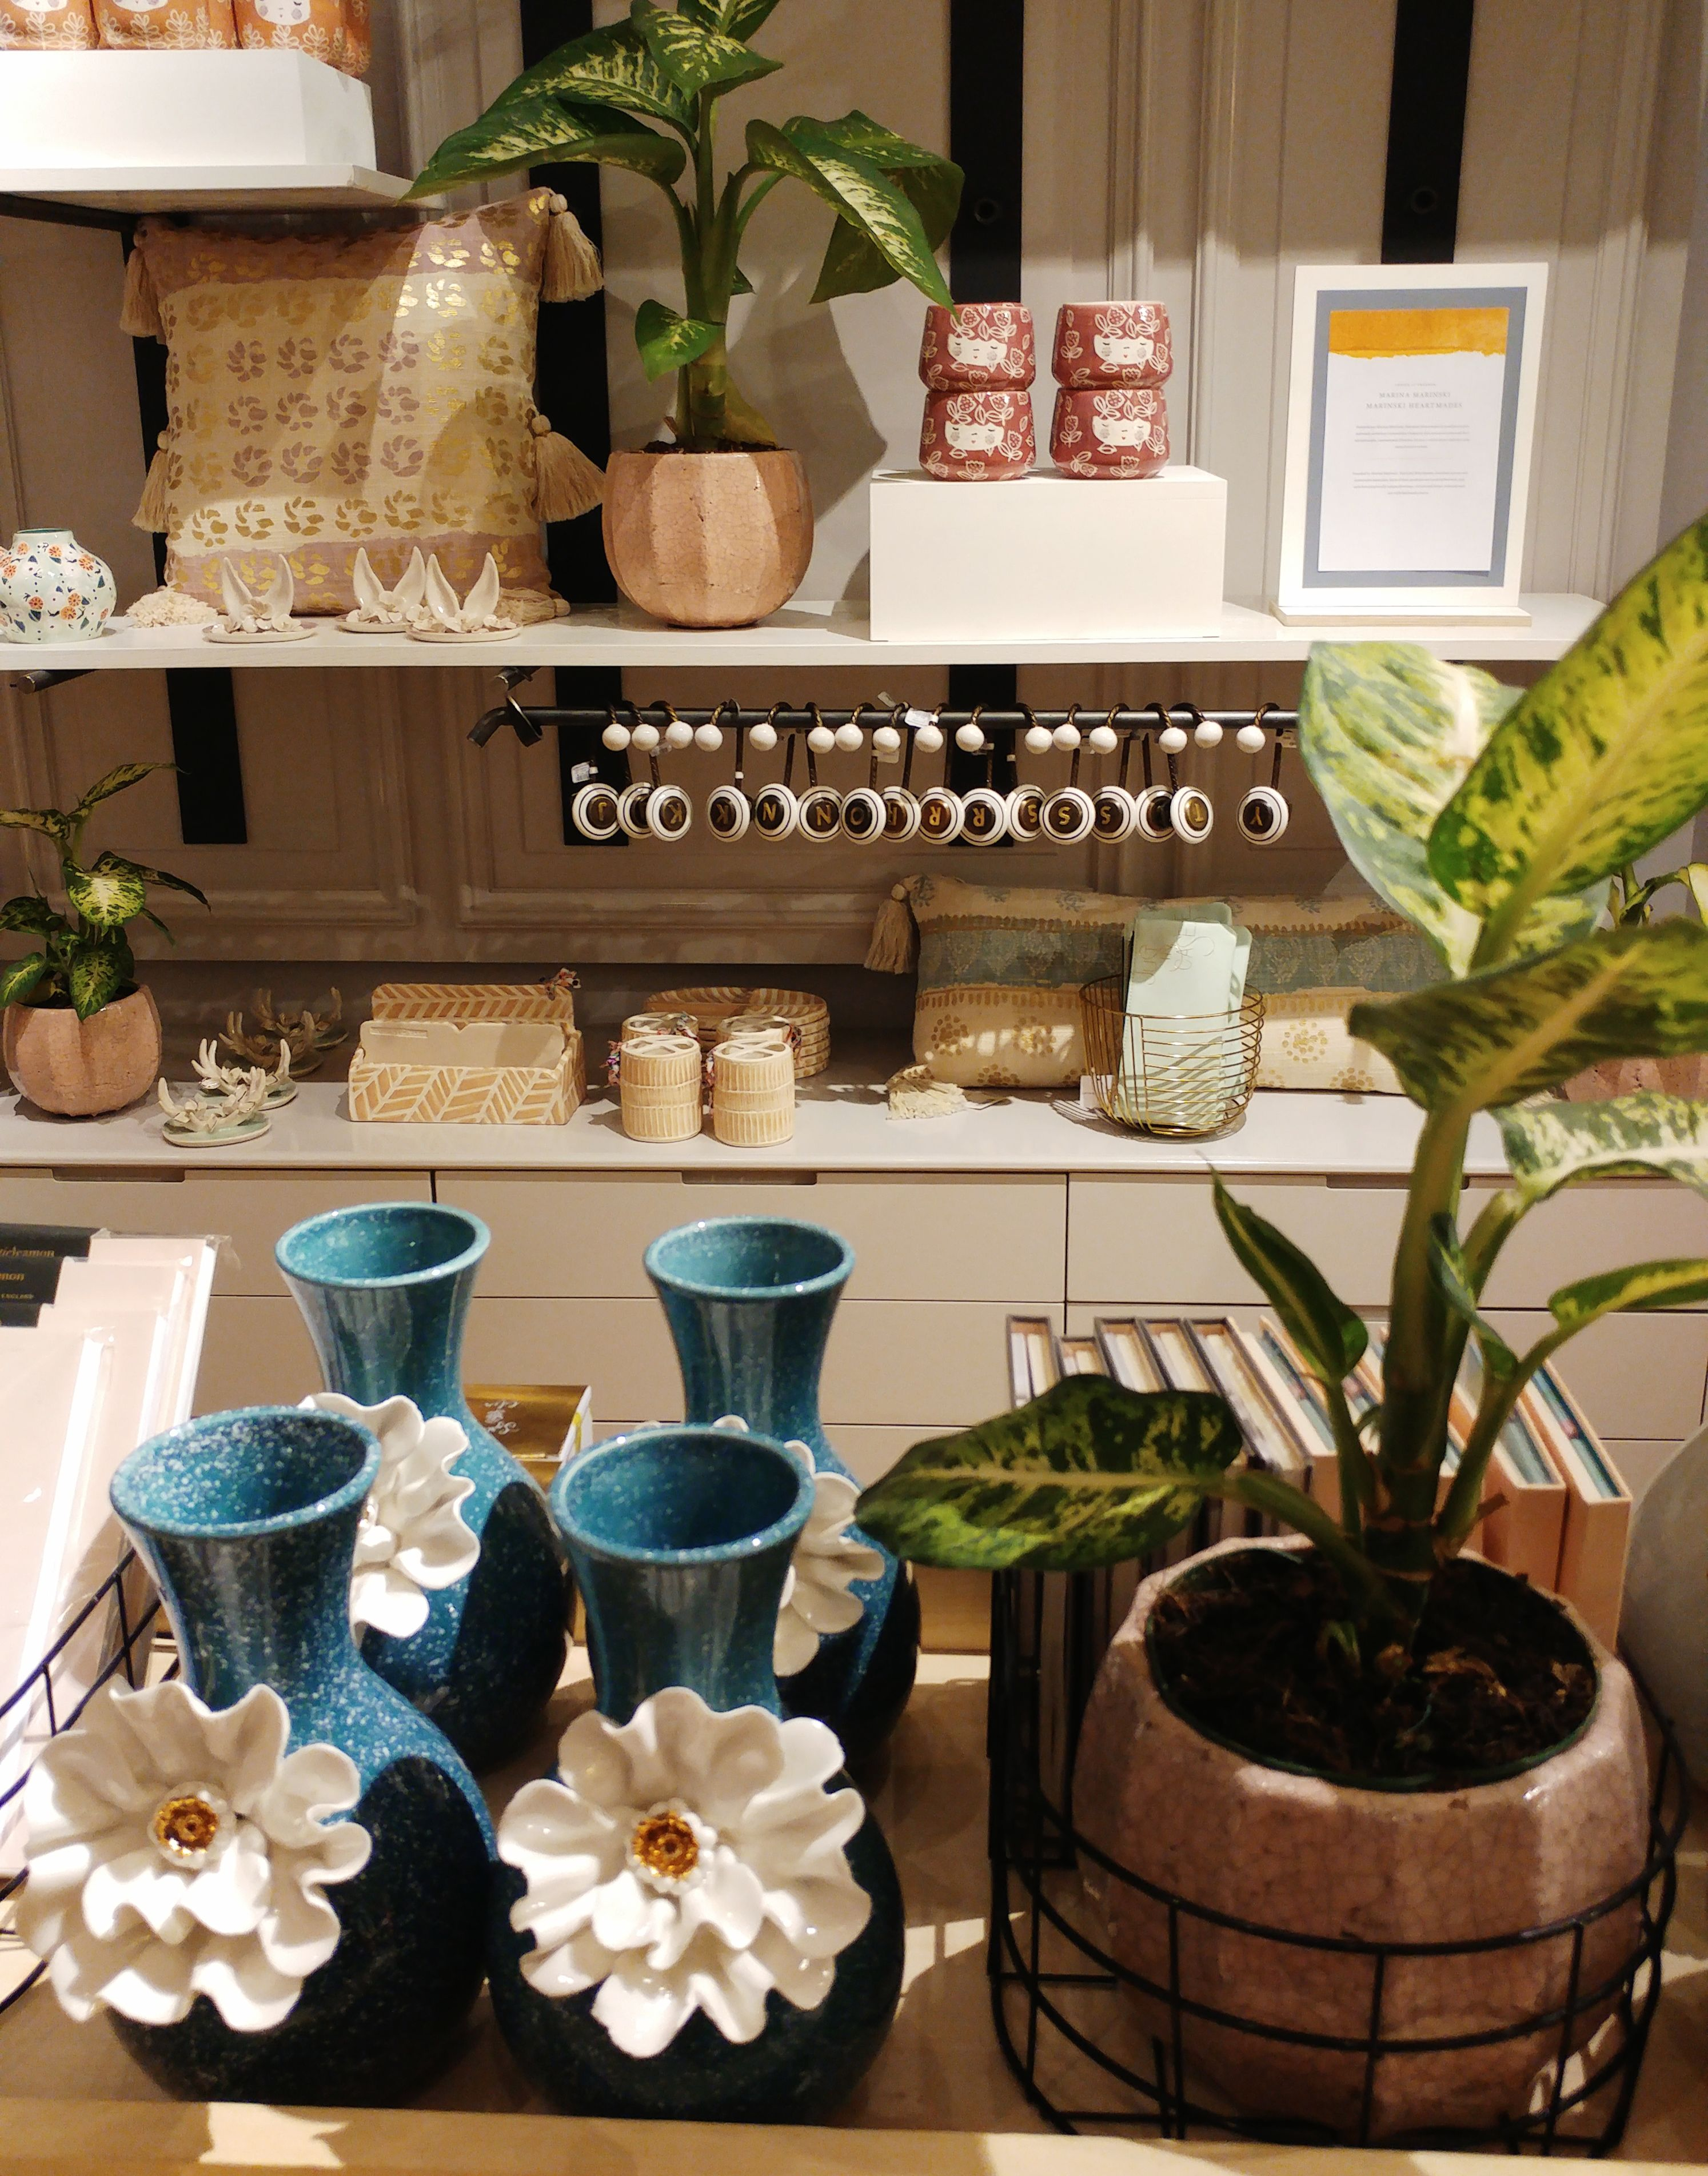 Anthropologie shop in Barcelona - ceramics